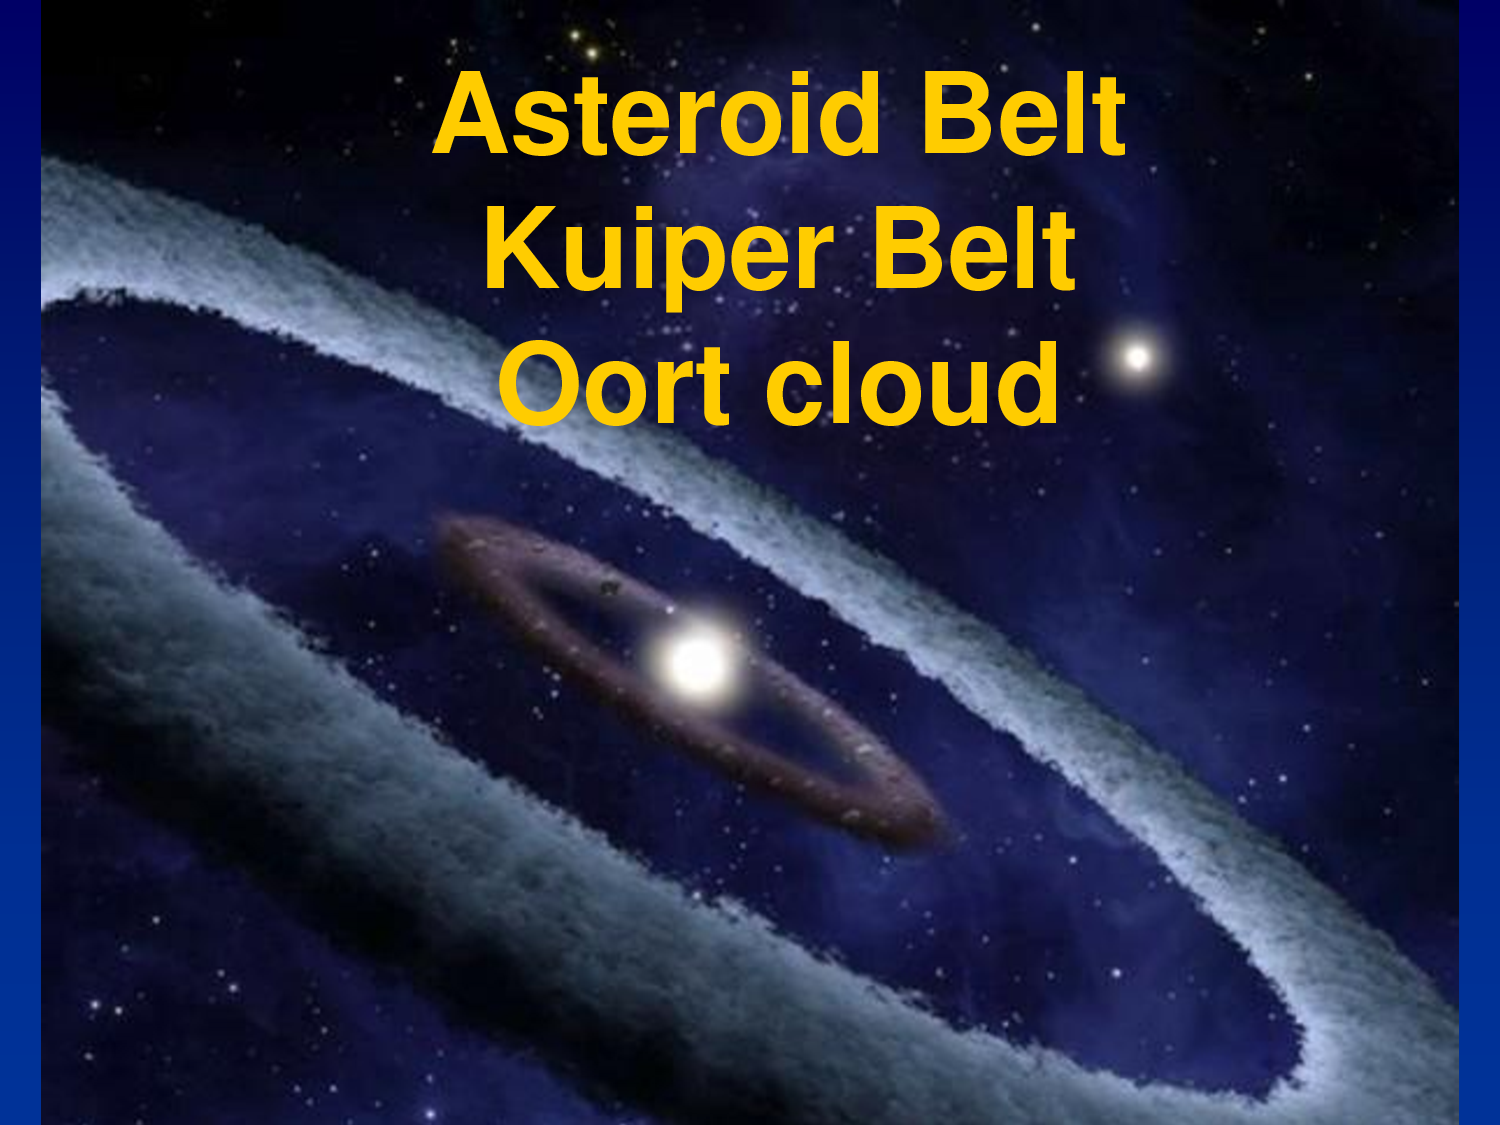 and belt cloud kuiper oort solar system including asteroid belt-#23